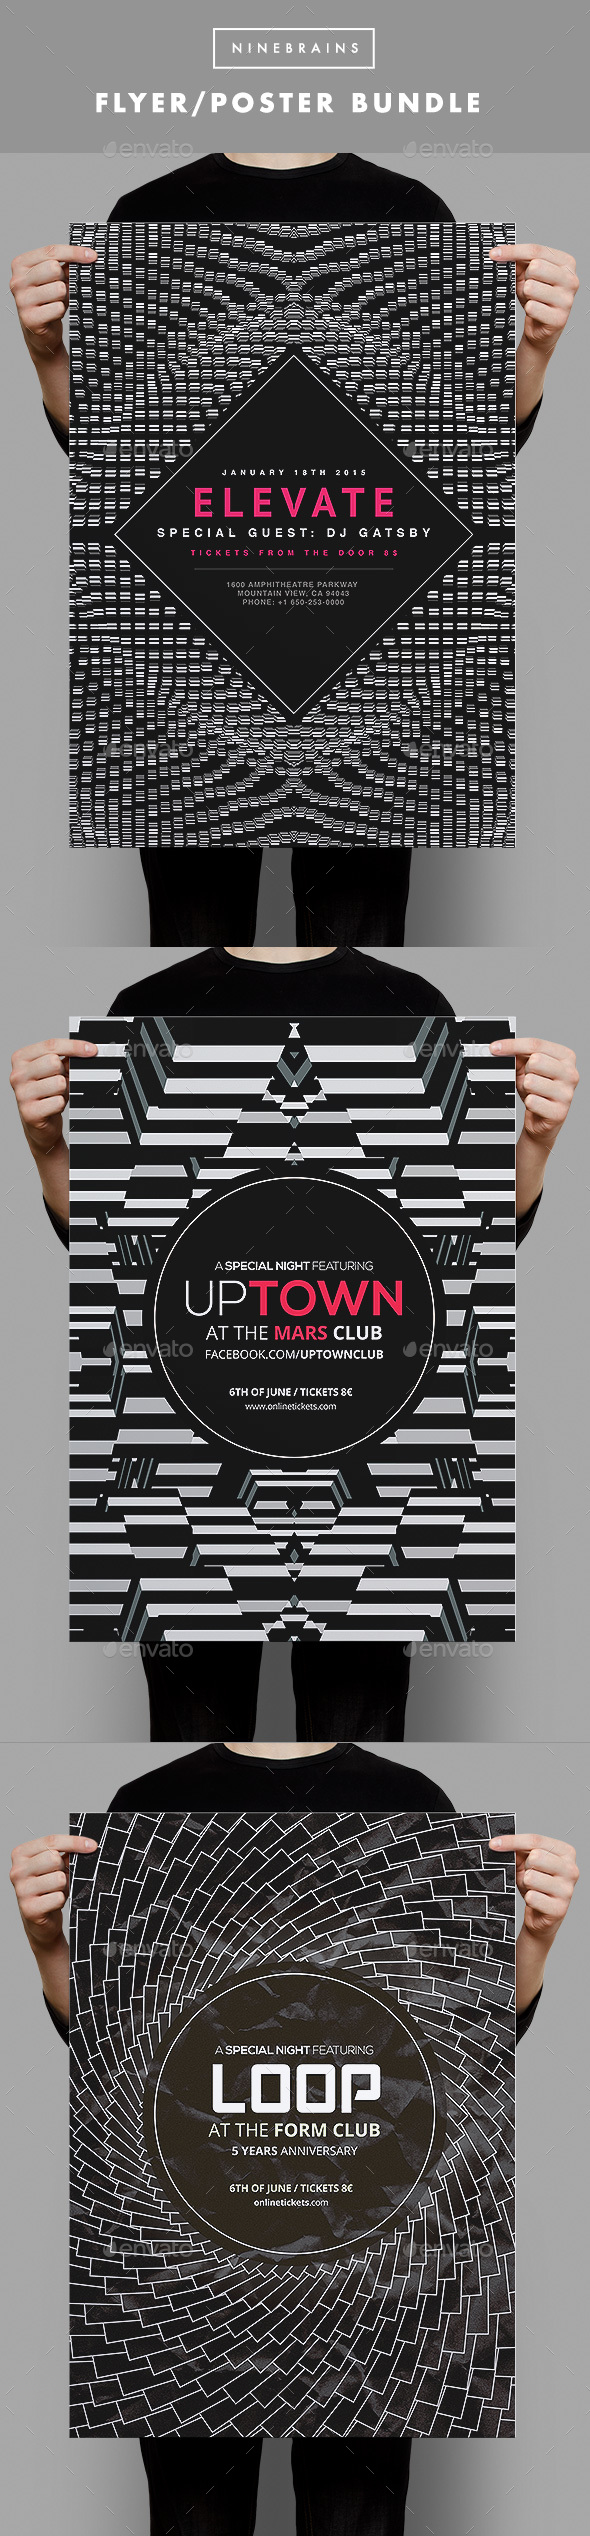 Black and White Flyer Bundle 1 - Clubs & Parties Events